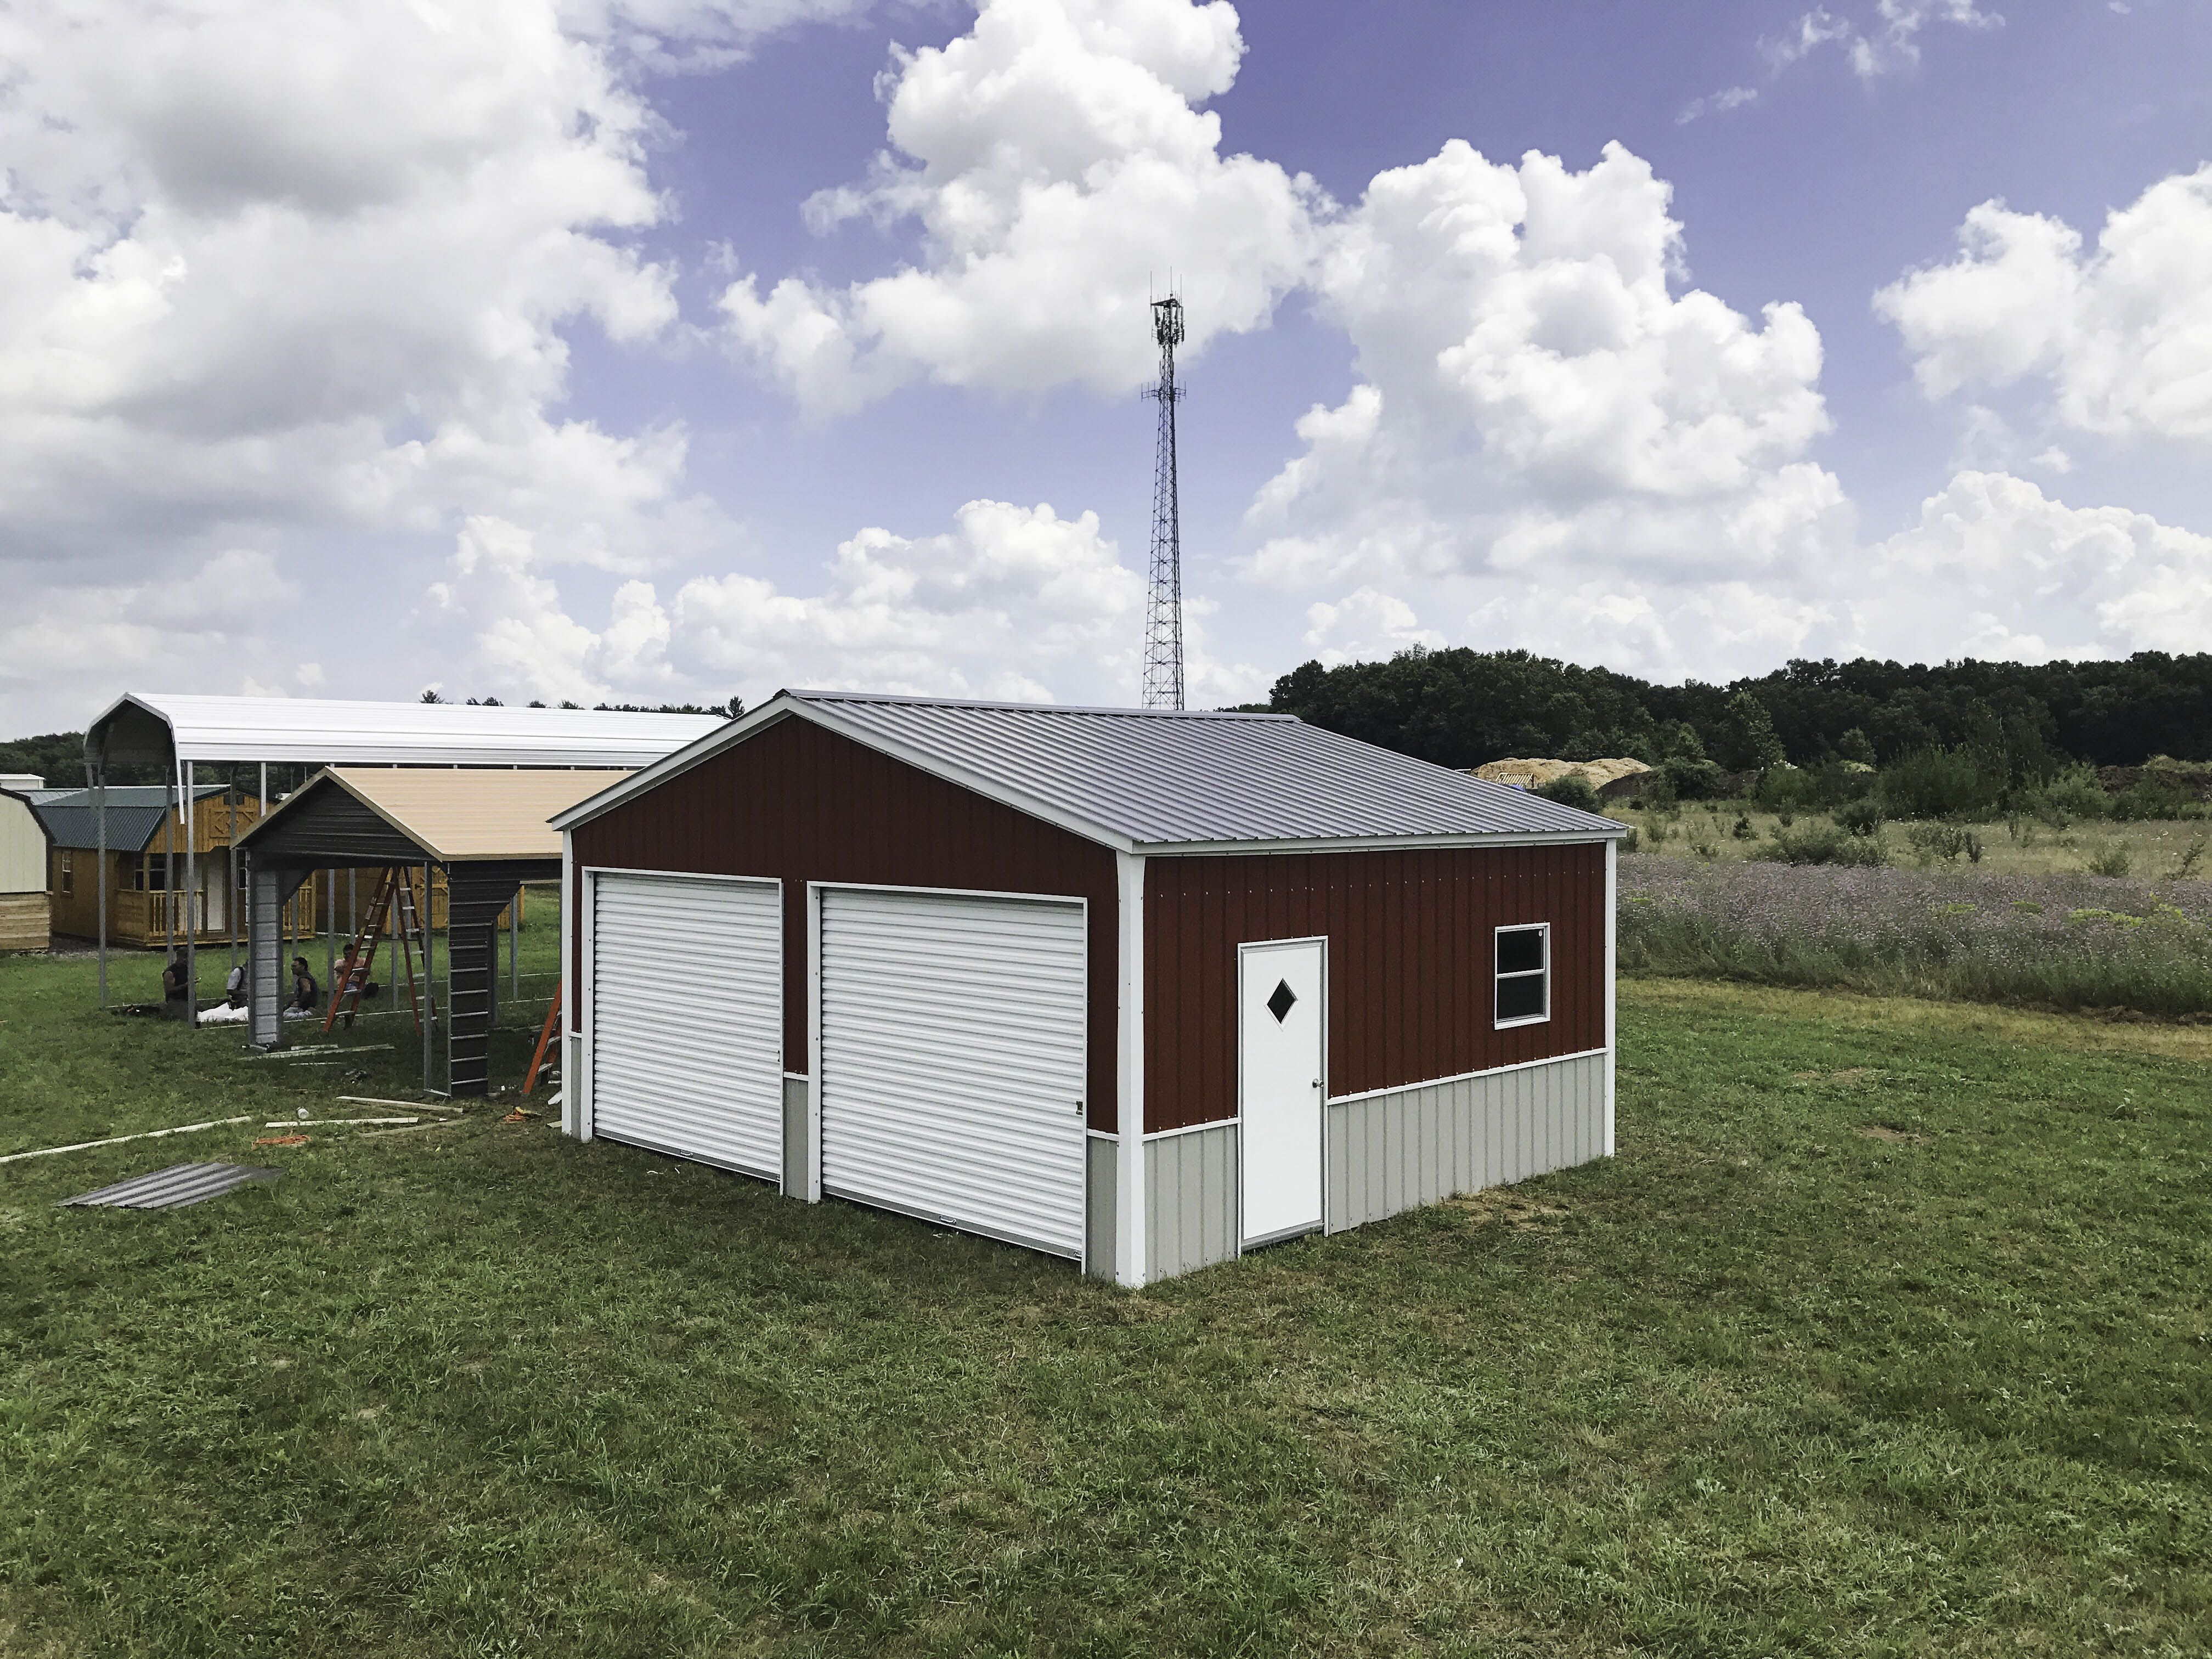 24x21x9 Garage All Vertical 2 10x8 1 Service 1 Window Midwest Steel Carports Steel Carports Metal Buildings Carport